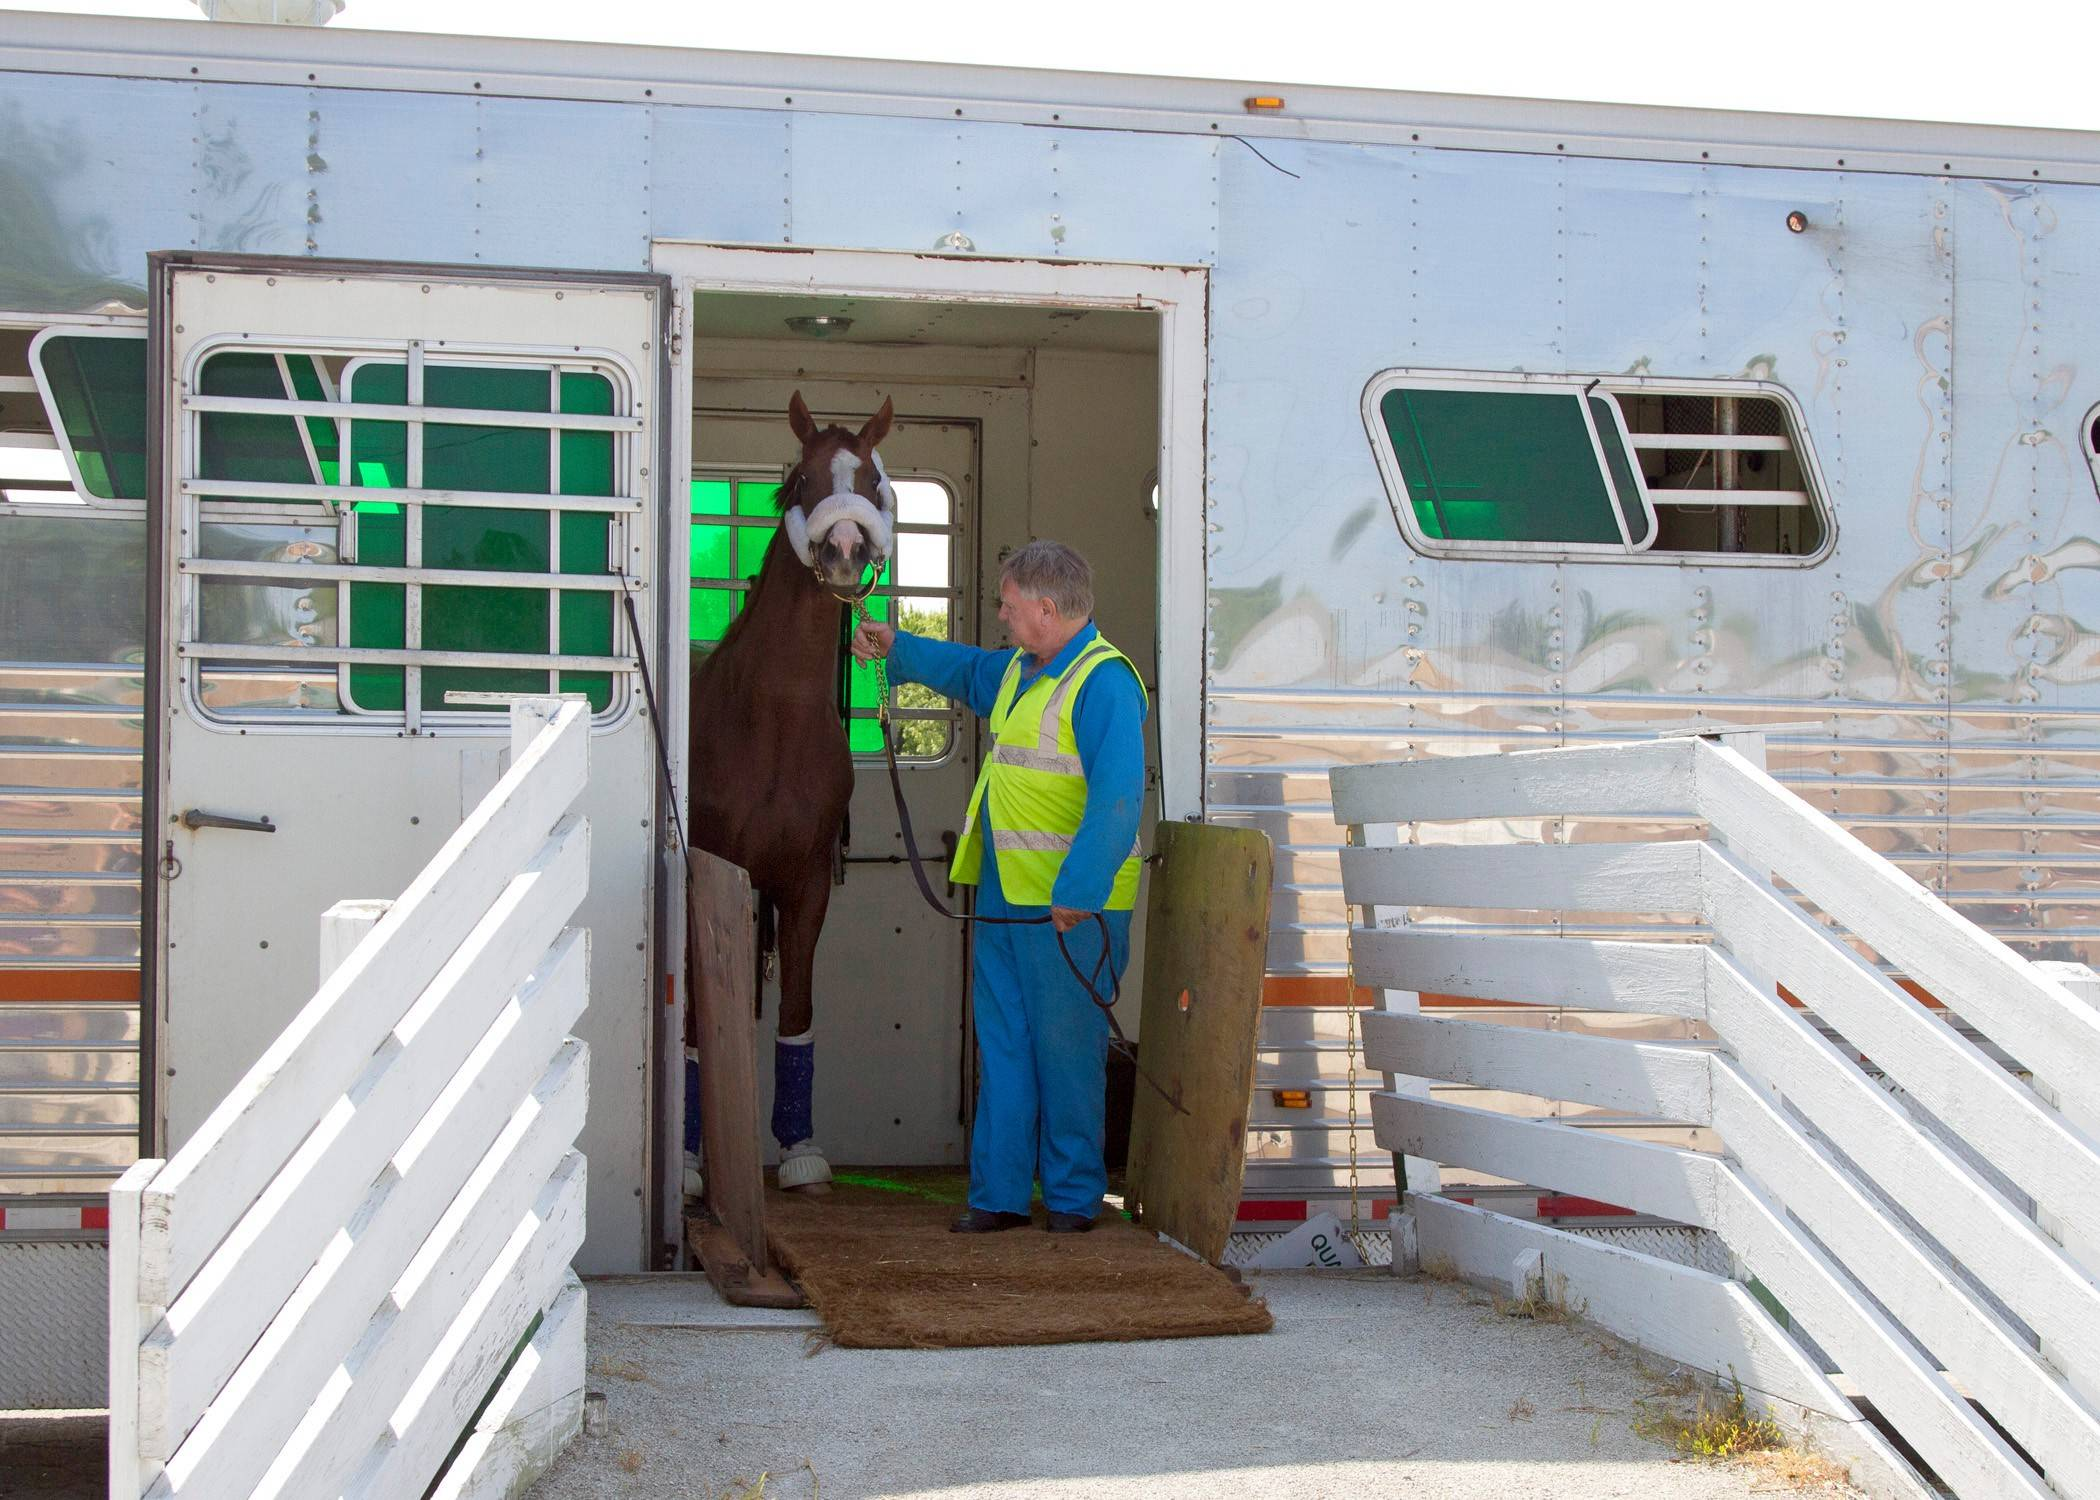 California Chrome arrives at Arlington Park on Tuesday. The 2014 Kentucky Derby and Preakness winner and horse of the year will train at the racetrack ahead of the Arlington Million on Aug. 15.